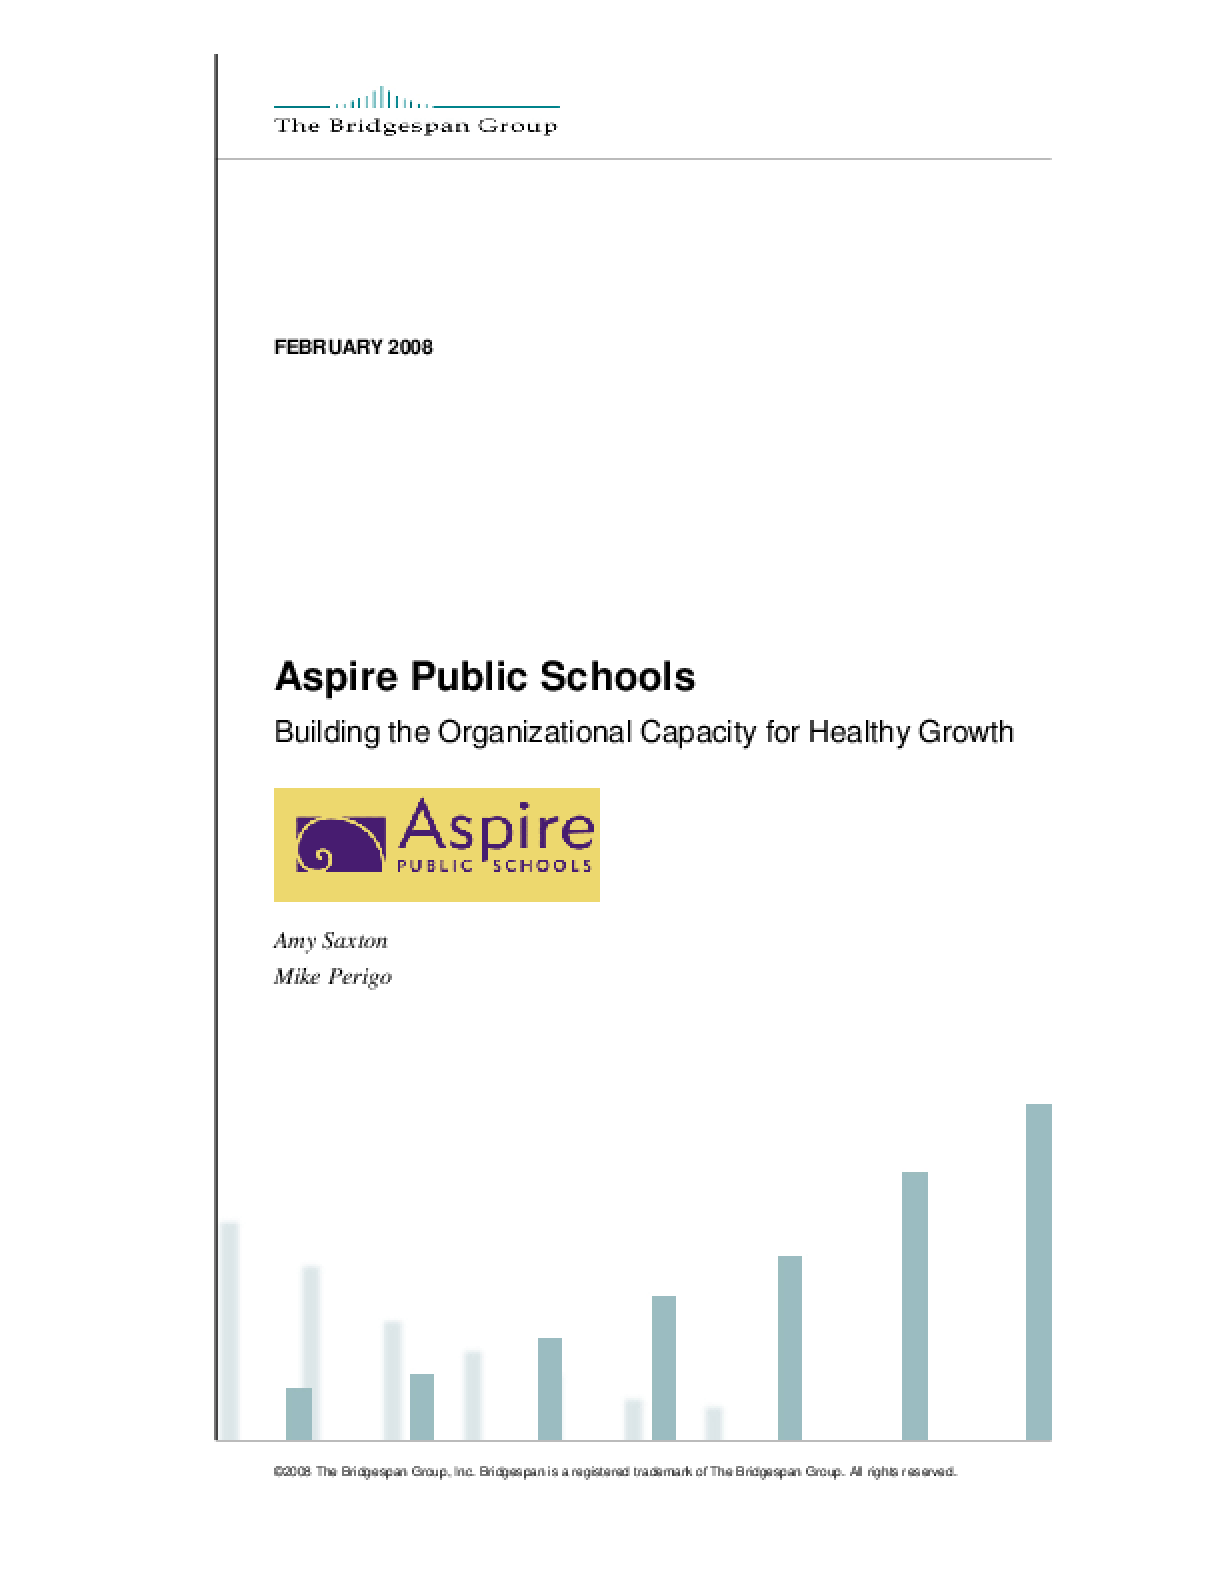 Aspire Public Schools: Building the Organizational Capacity for Healthy Growth